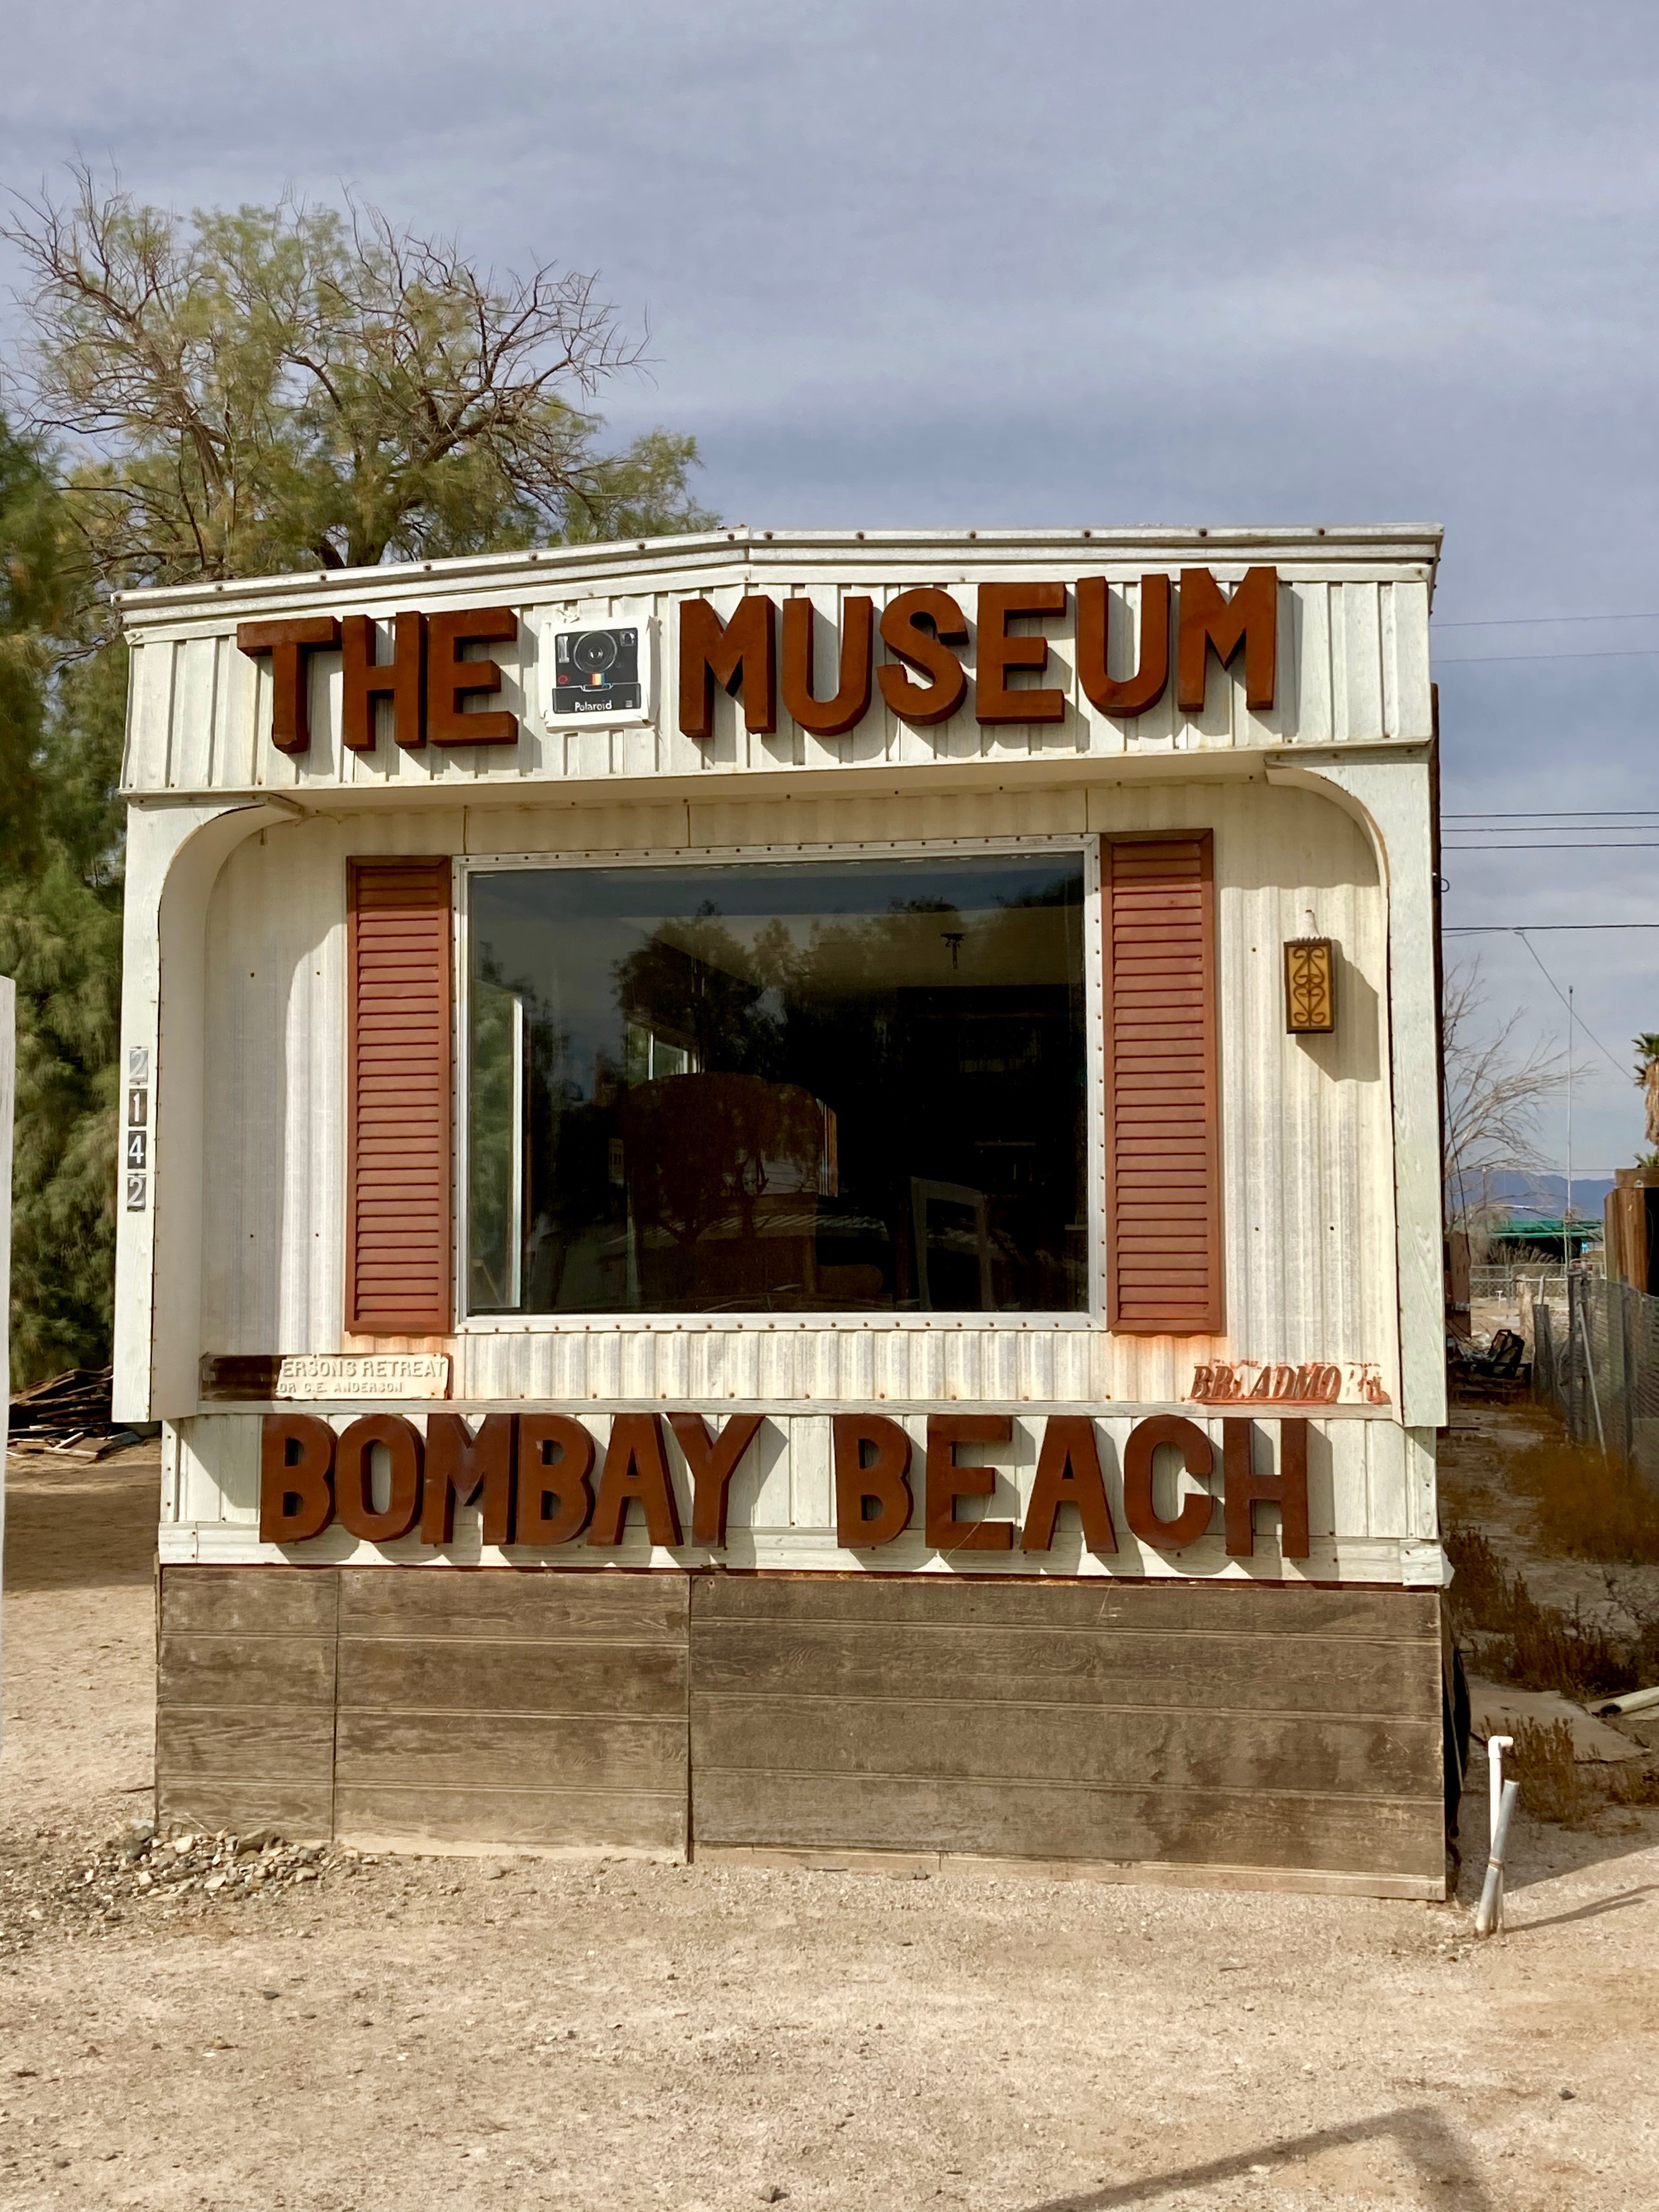 exterior view of a white trailer labeled Museum Bombay Beach in large letters